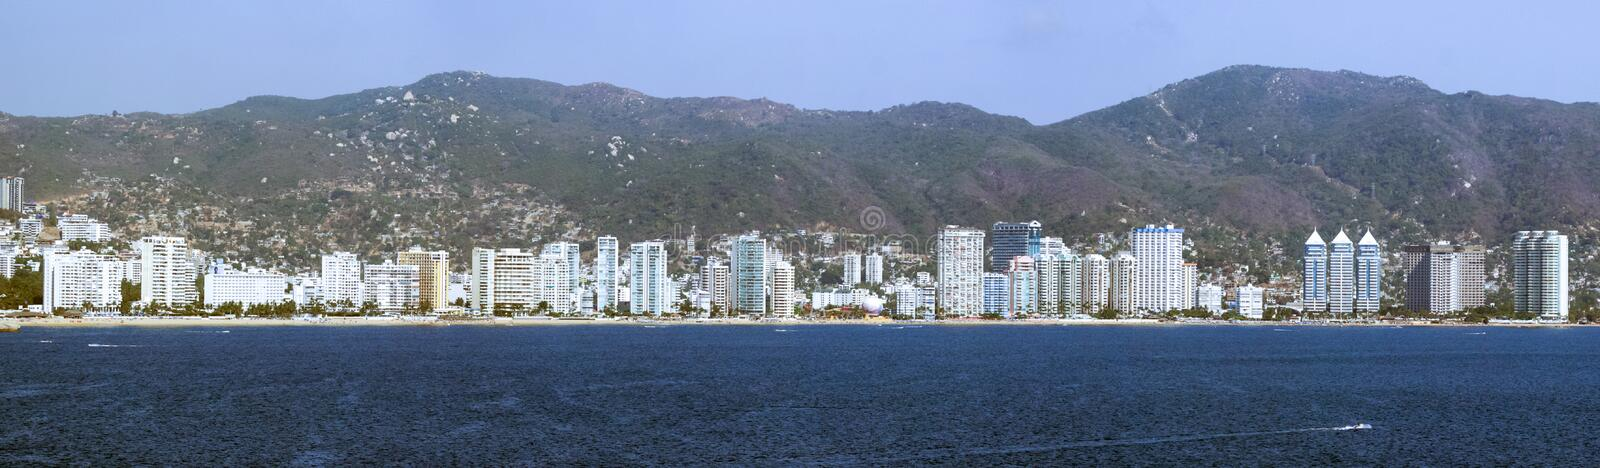 Vue panoramique d'Acapulco photographie stock